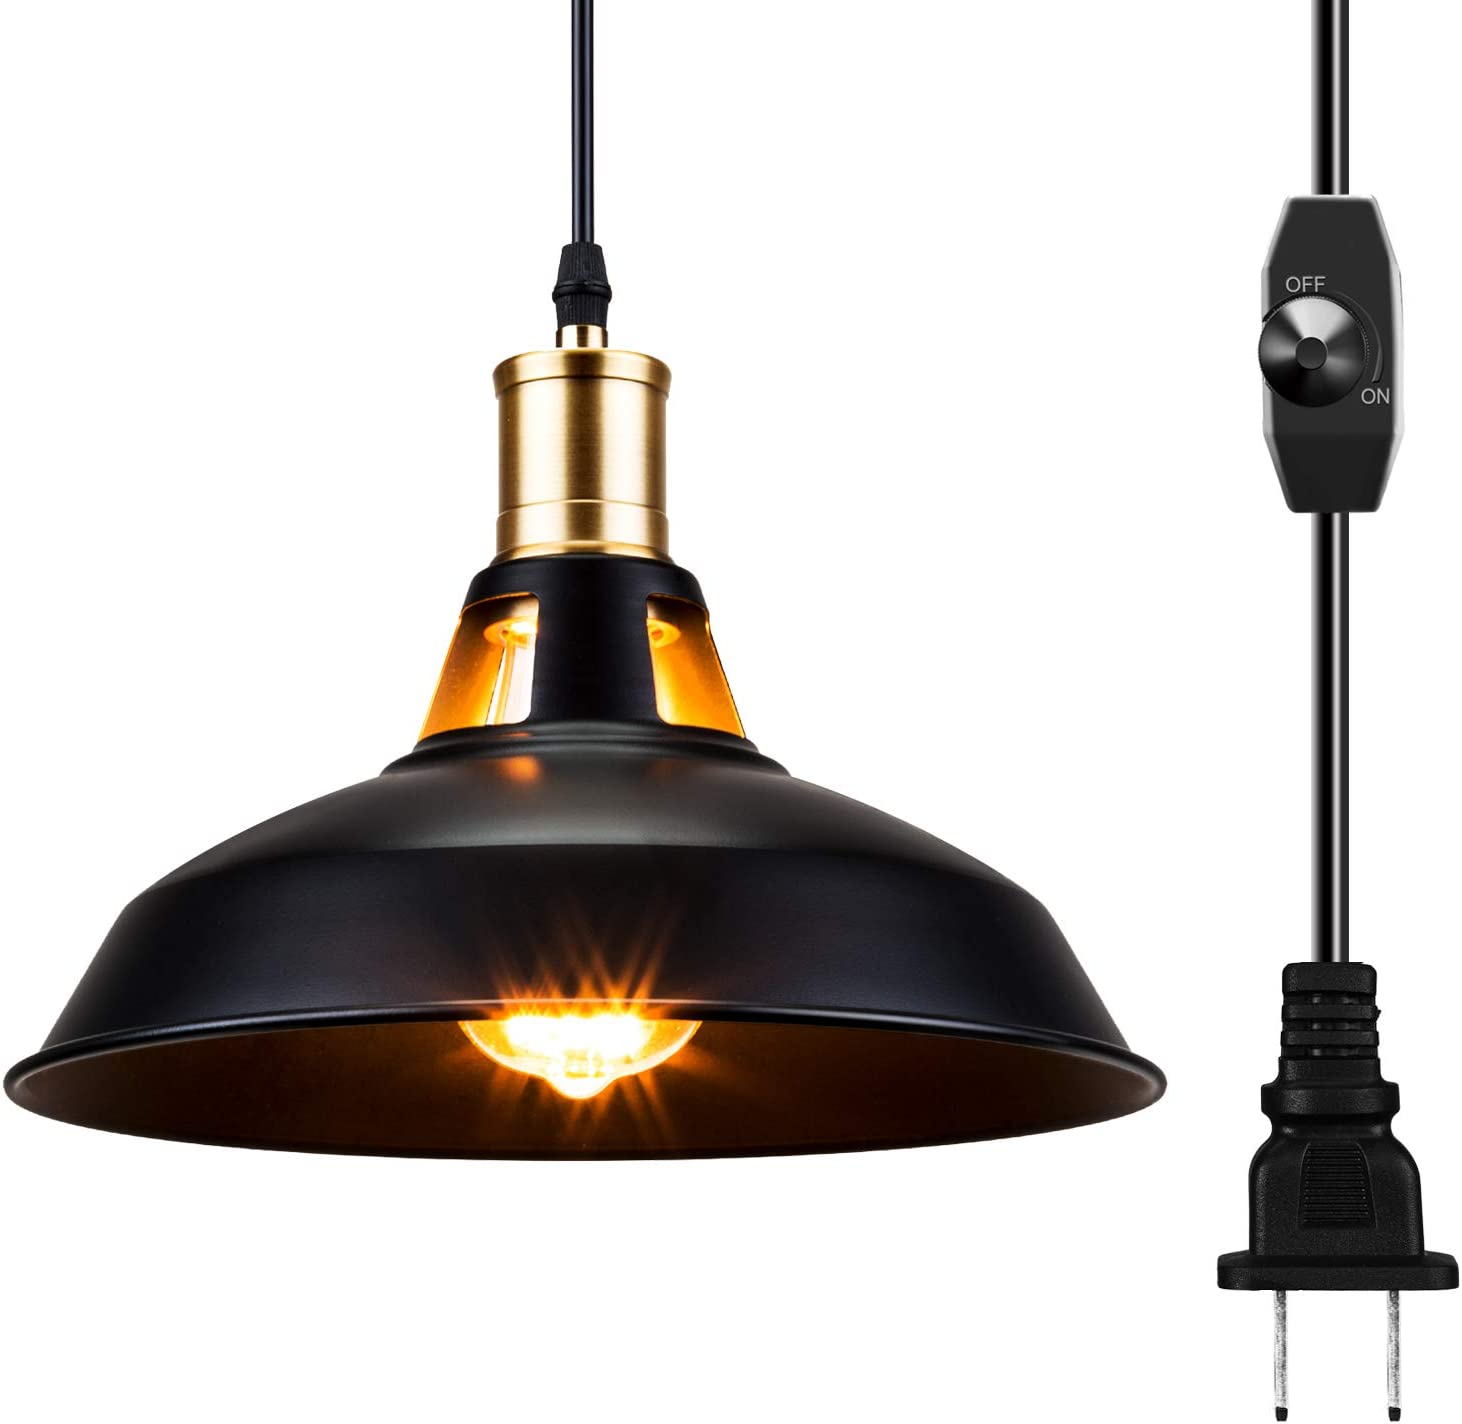 SUNVP Industrial Dimmable Pendant Lights Plug in Black Metal Aluminum Shade Swag Hanging Lamp Fixture for Farmhouse, Dining, Bedroom, Hallway (1 Pack)